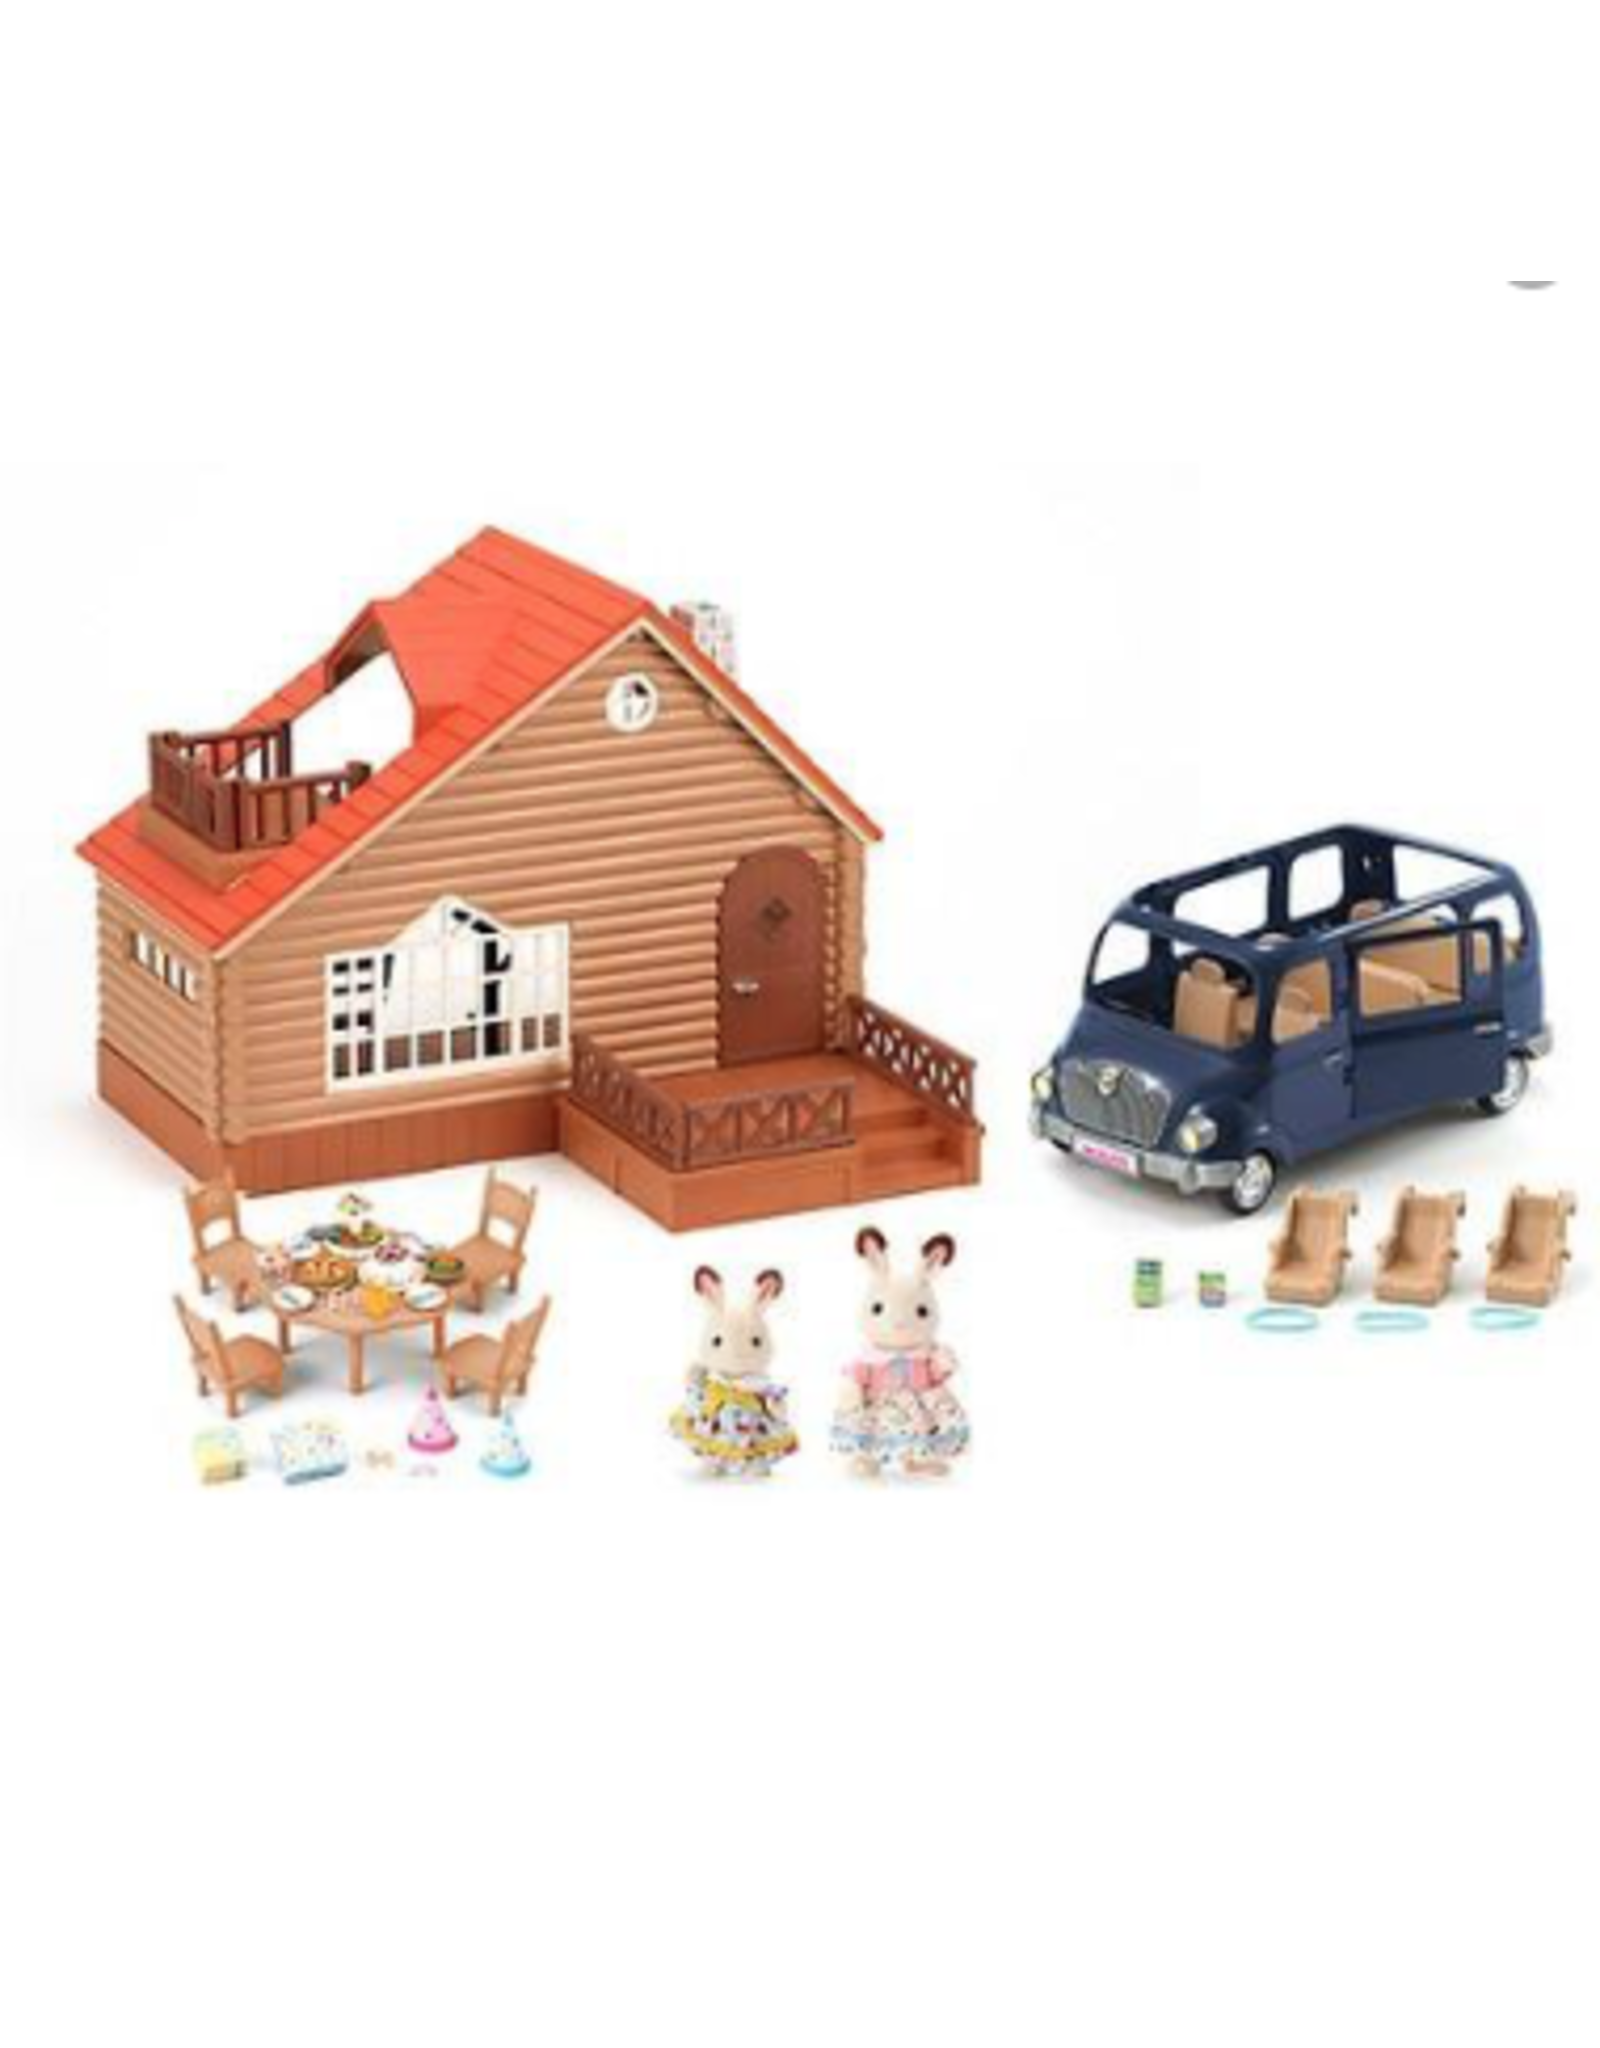 Calico Critters Calico Critters Lakeside Lodge Gift Set